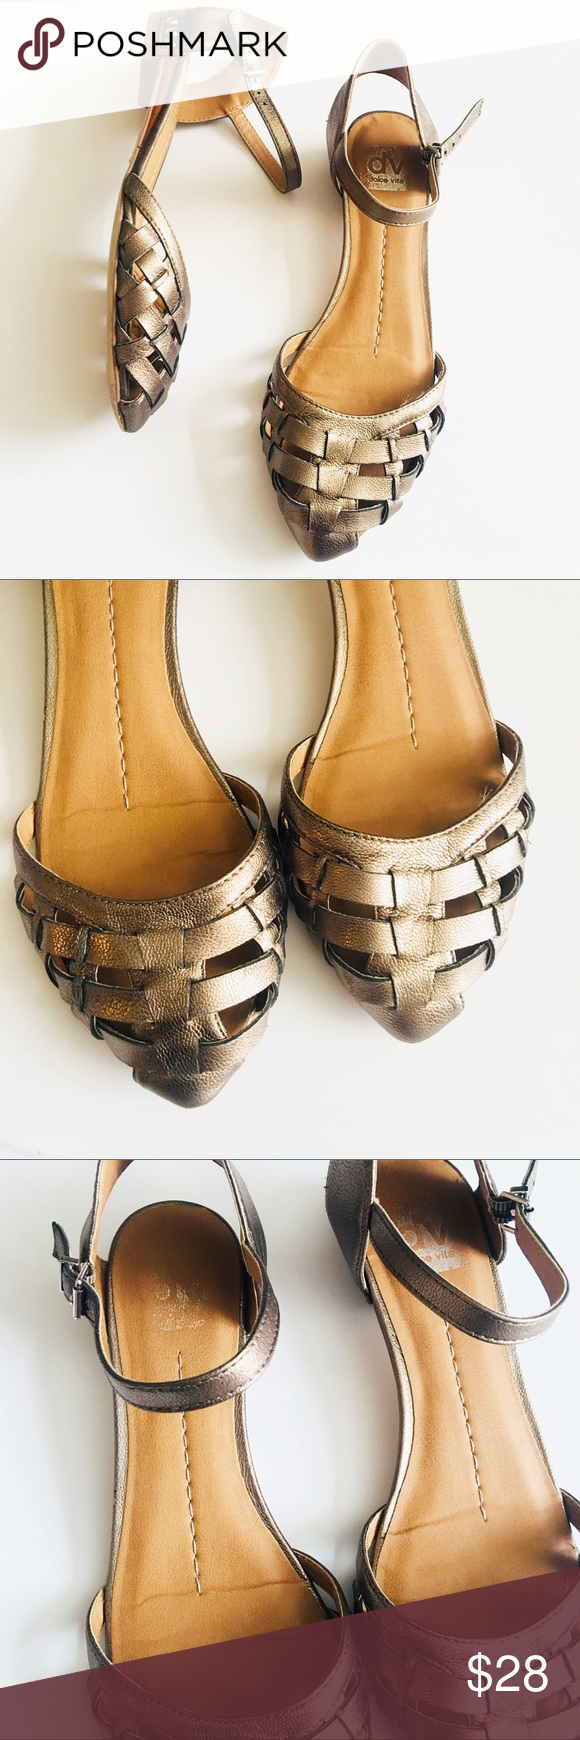 ab80a49a3 DV Dolce Vita size 8.5 bronze ankle strap sandals Minor signs of wear  gently used in great pre owned condition DV by Dolce Vita Shoes Sandals